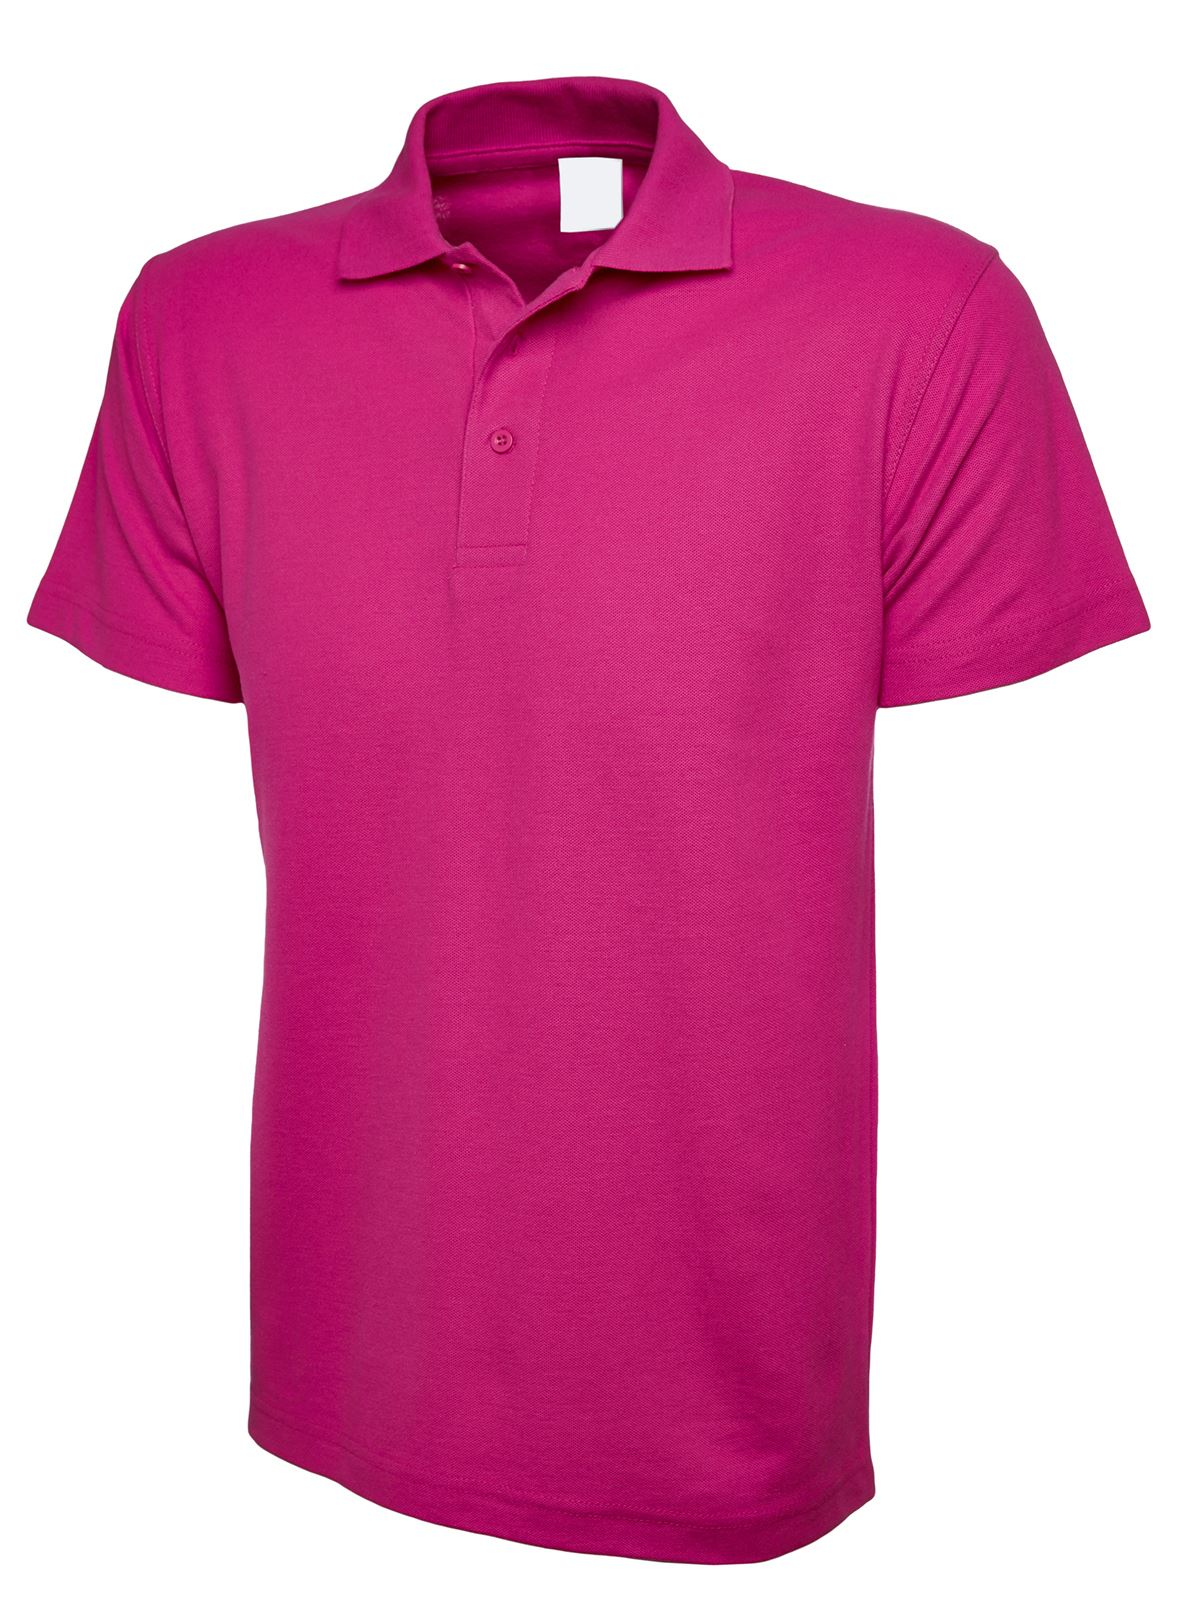 Mens Womens Classic Polo Shirt Blank Plain Short Sleeve